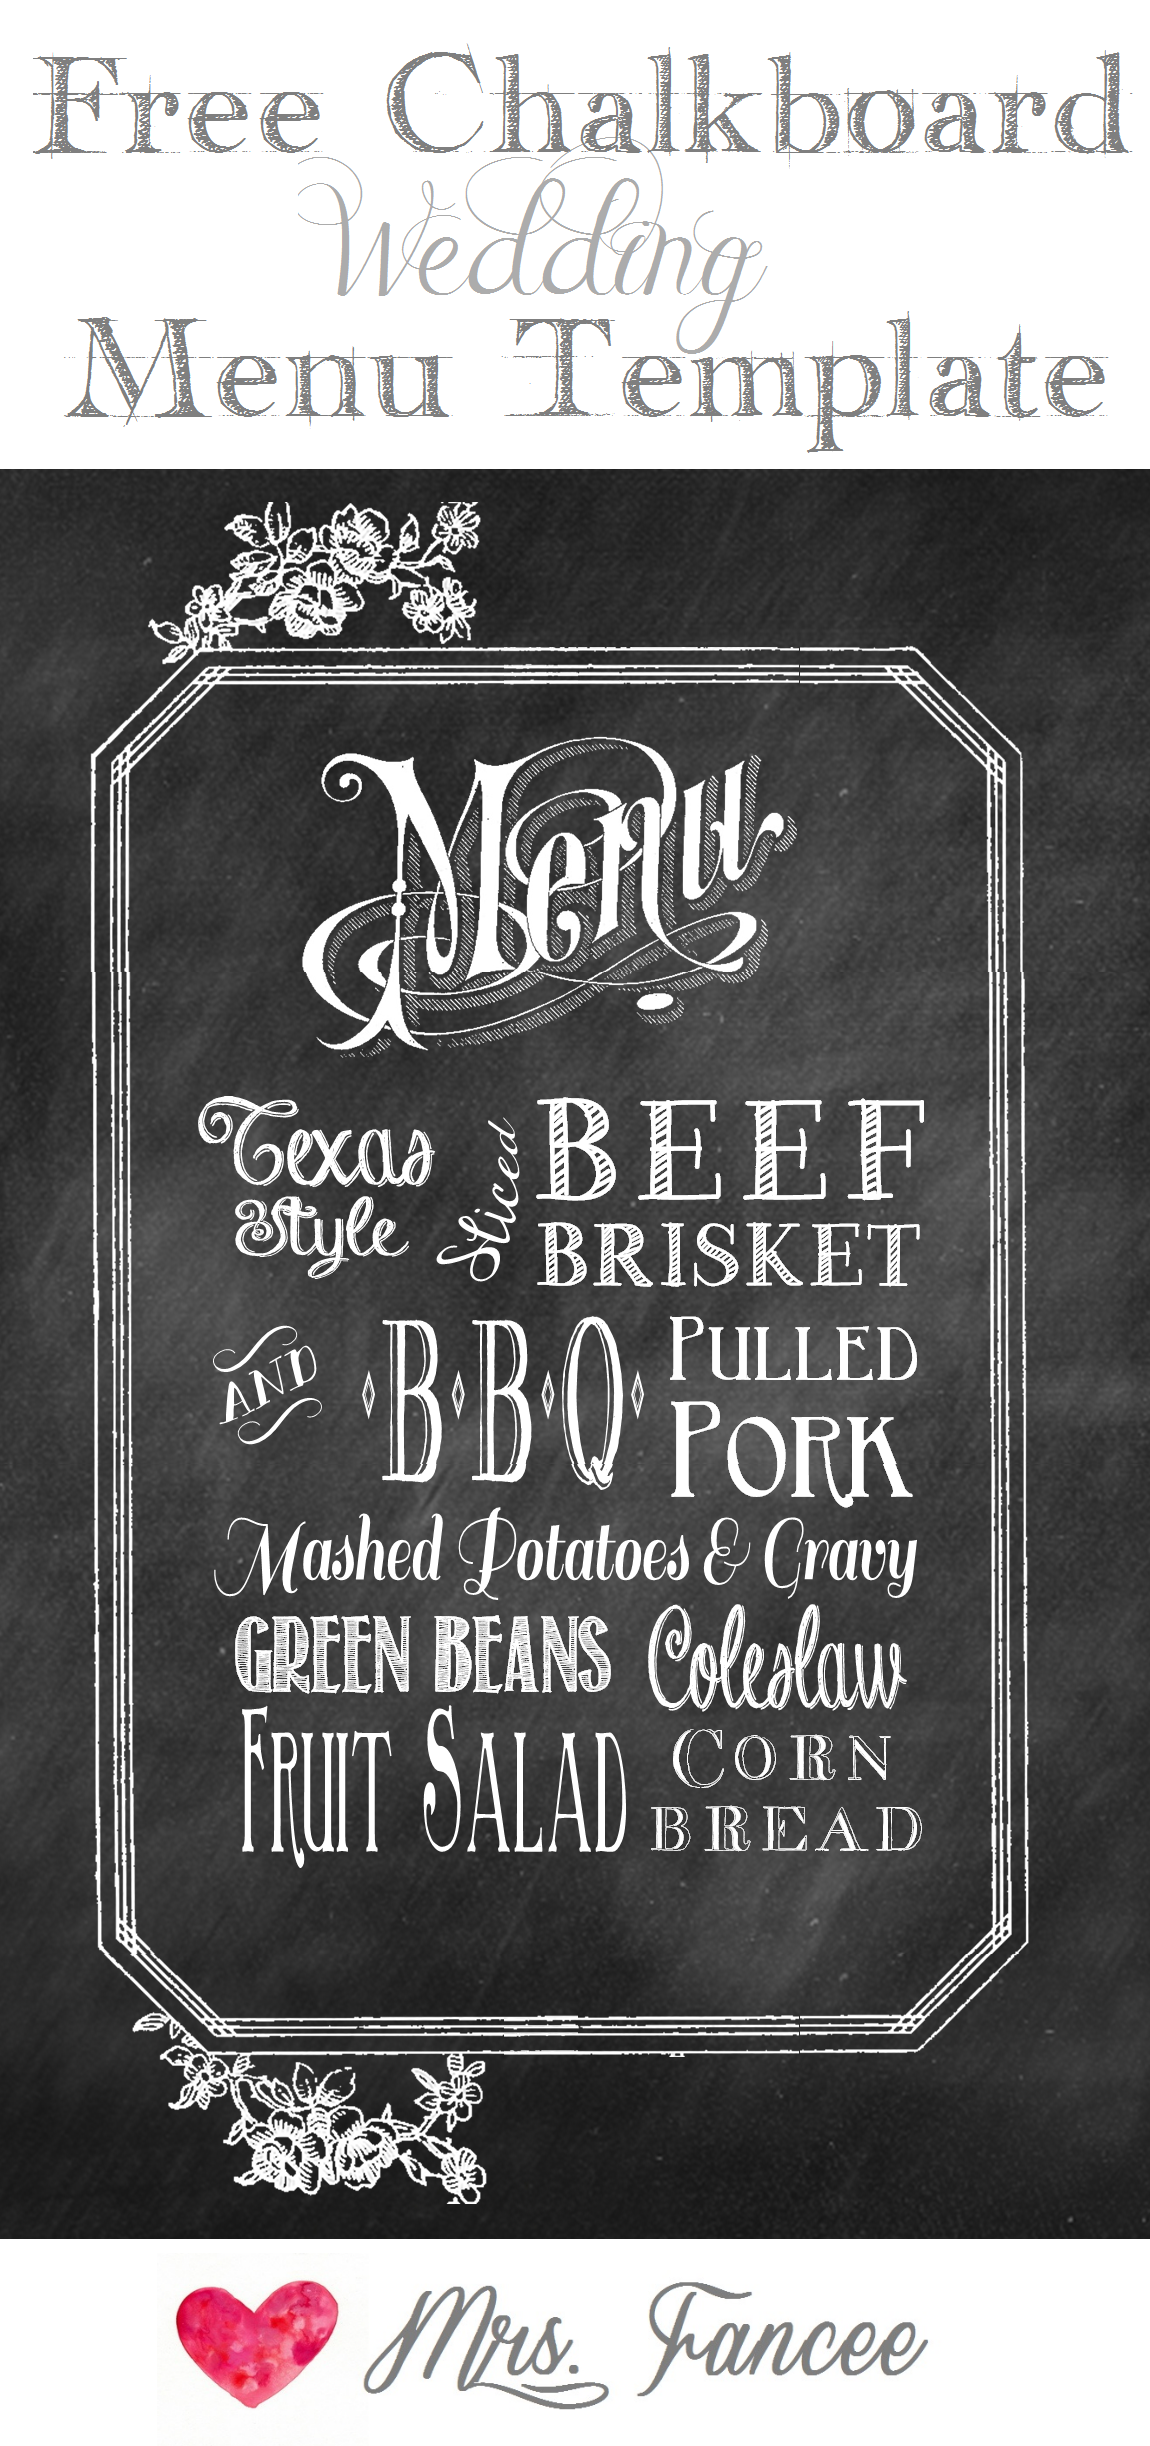 chalkboard wedding menu free template menu templates With chalkboard wedding sign template